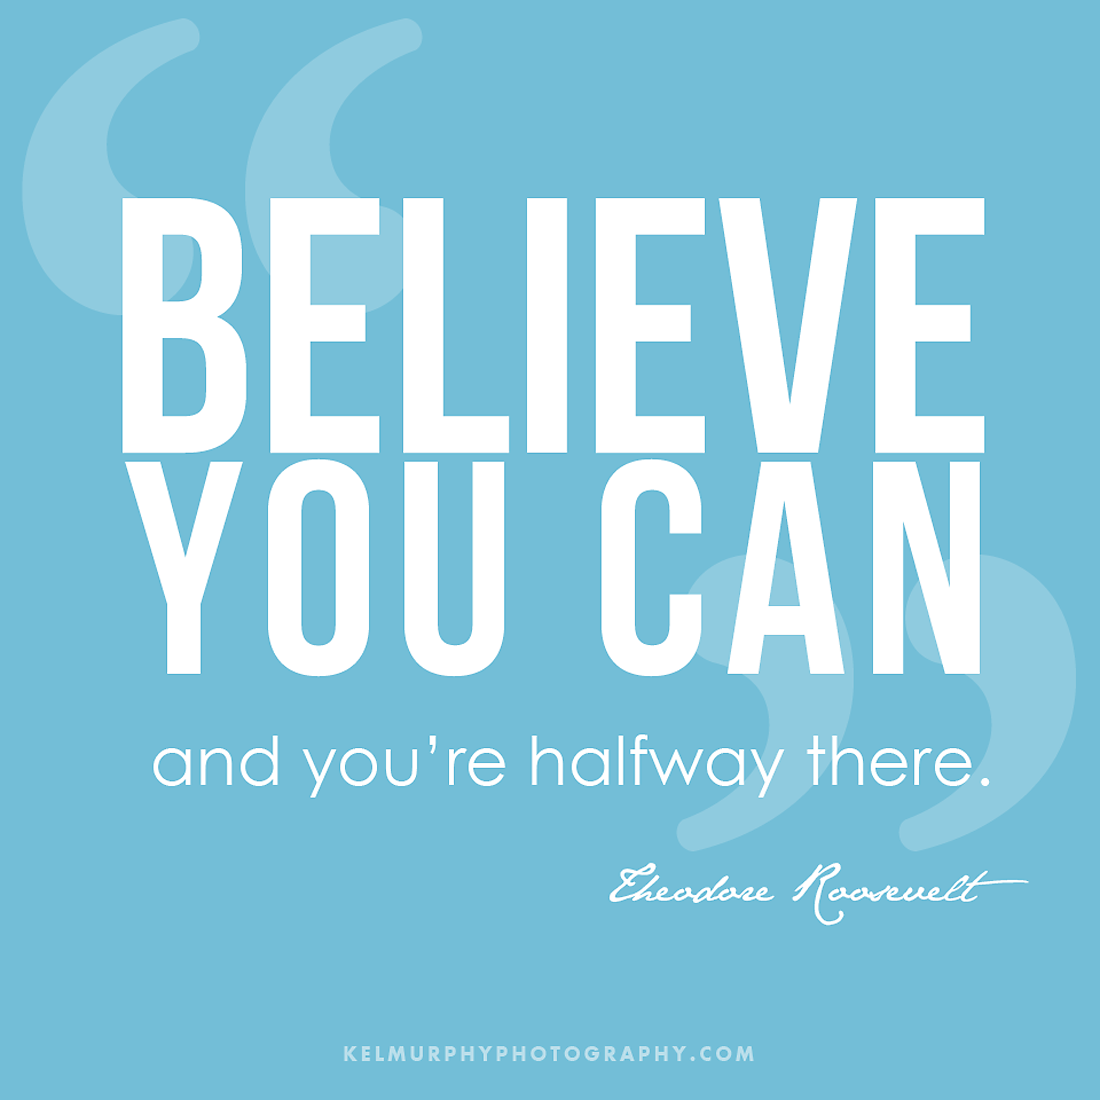 Kel Murphy Photography Believe You Can Halfway There